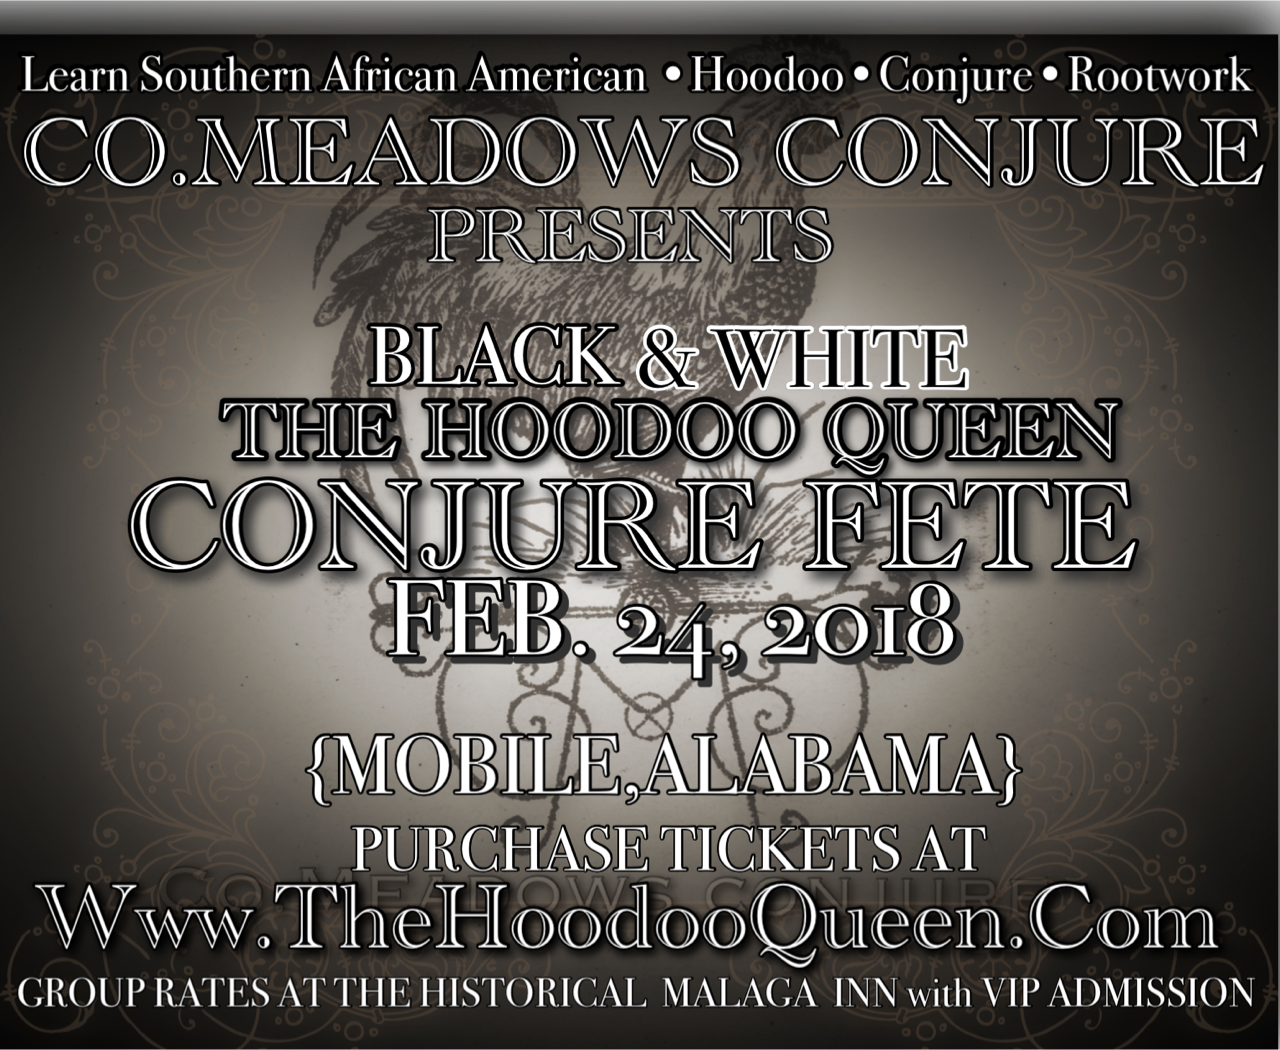 The Hoodoo Queen The Conjure Fete